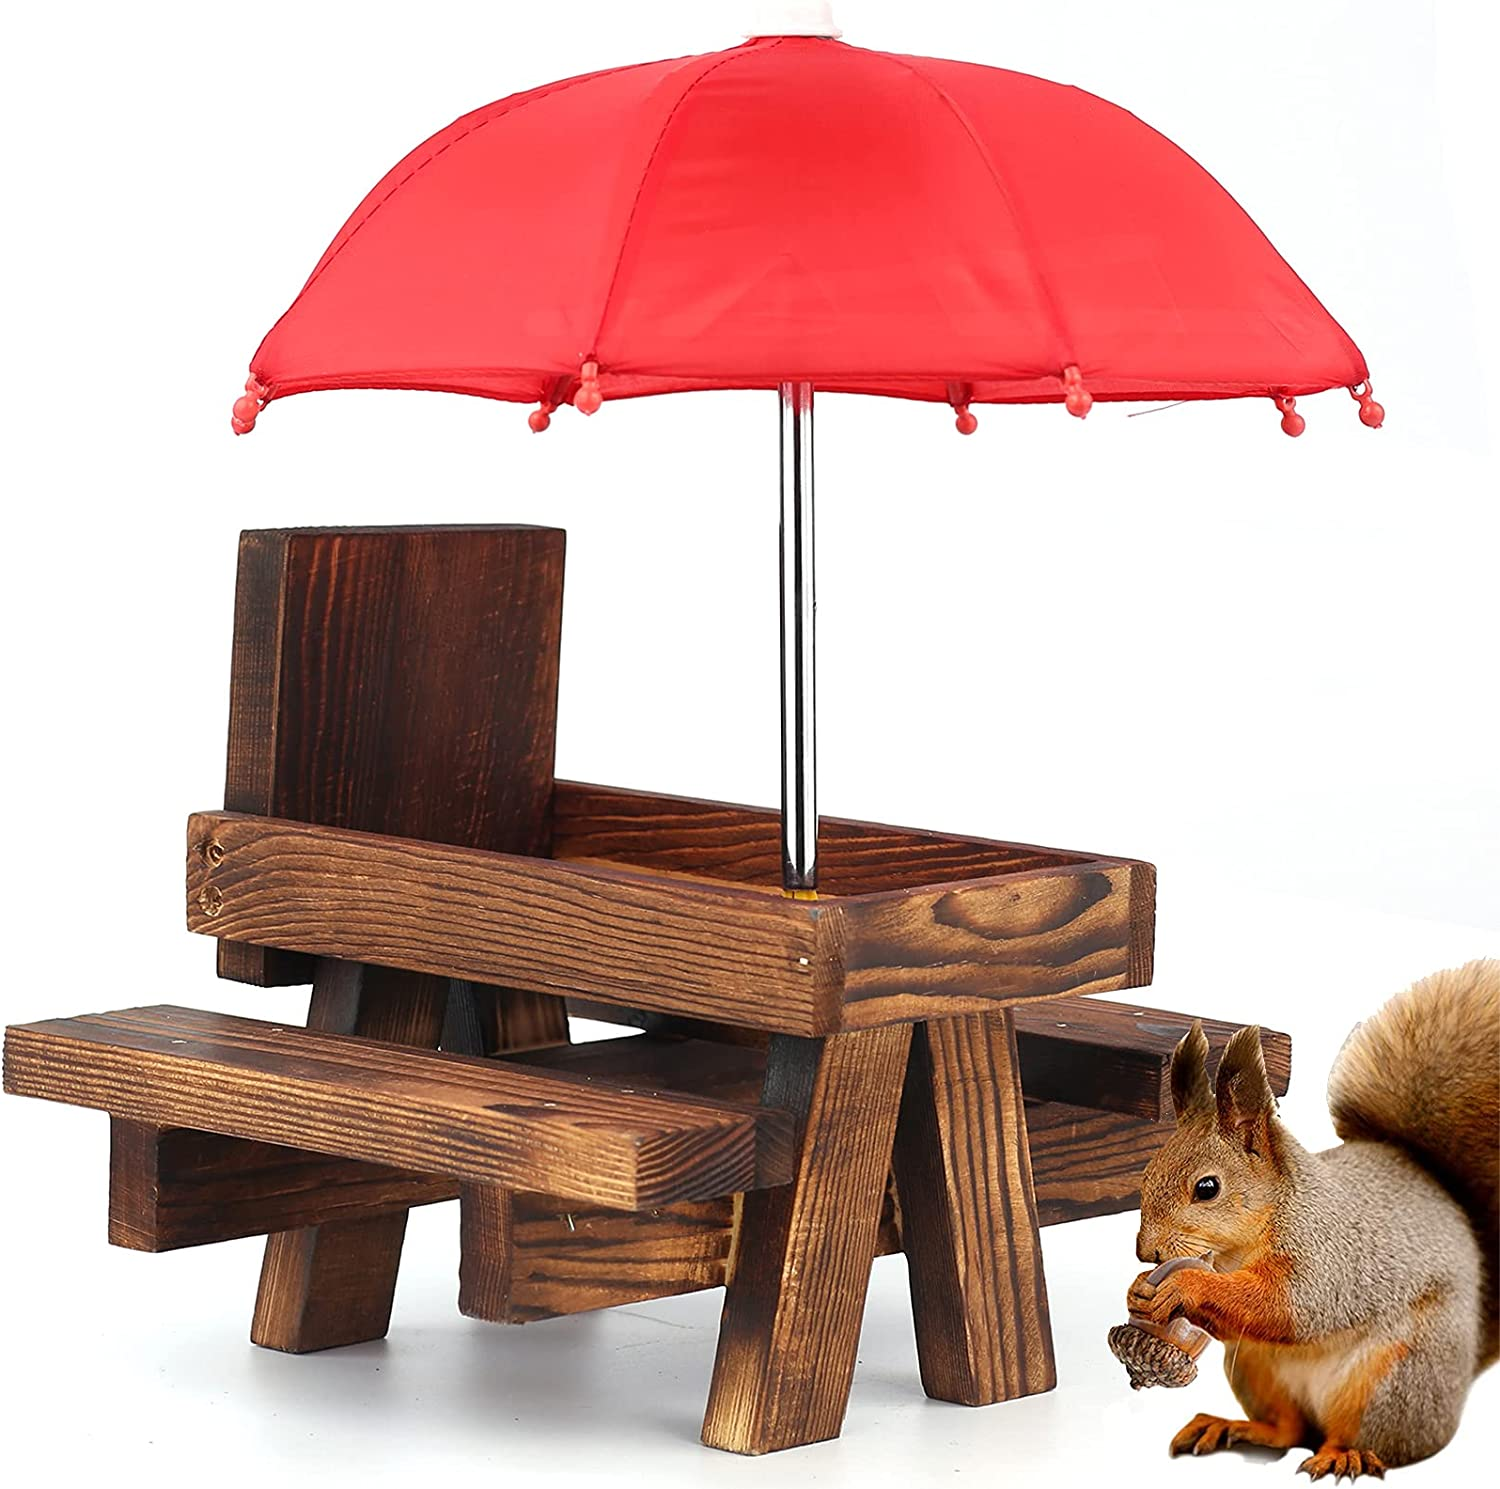 Squirrel Picnic Table Feeder with Umbrella   Cute Hanging Mini Picnic Table for Squirrels and Chipmunk   Good Gift Gifts for Squirrel Lovers ( Pine )